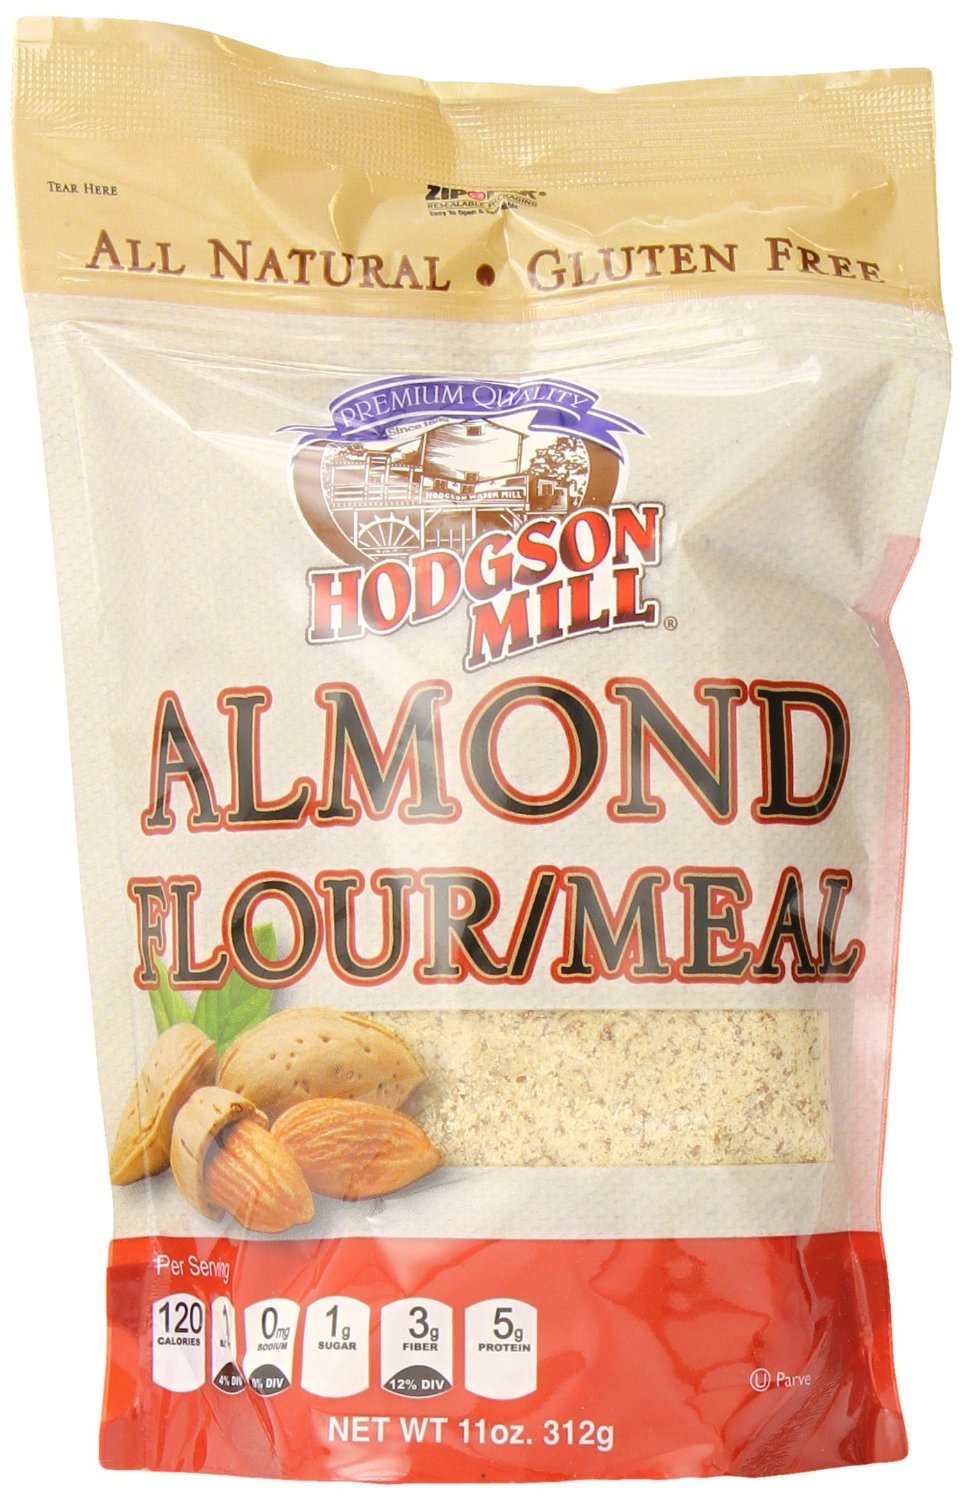 Hodgson Mill Flour Meal Almond